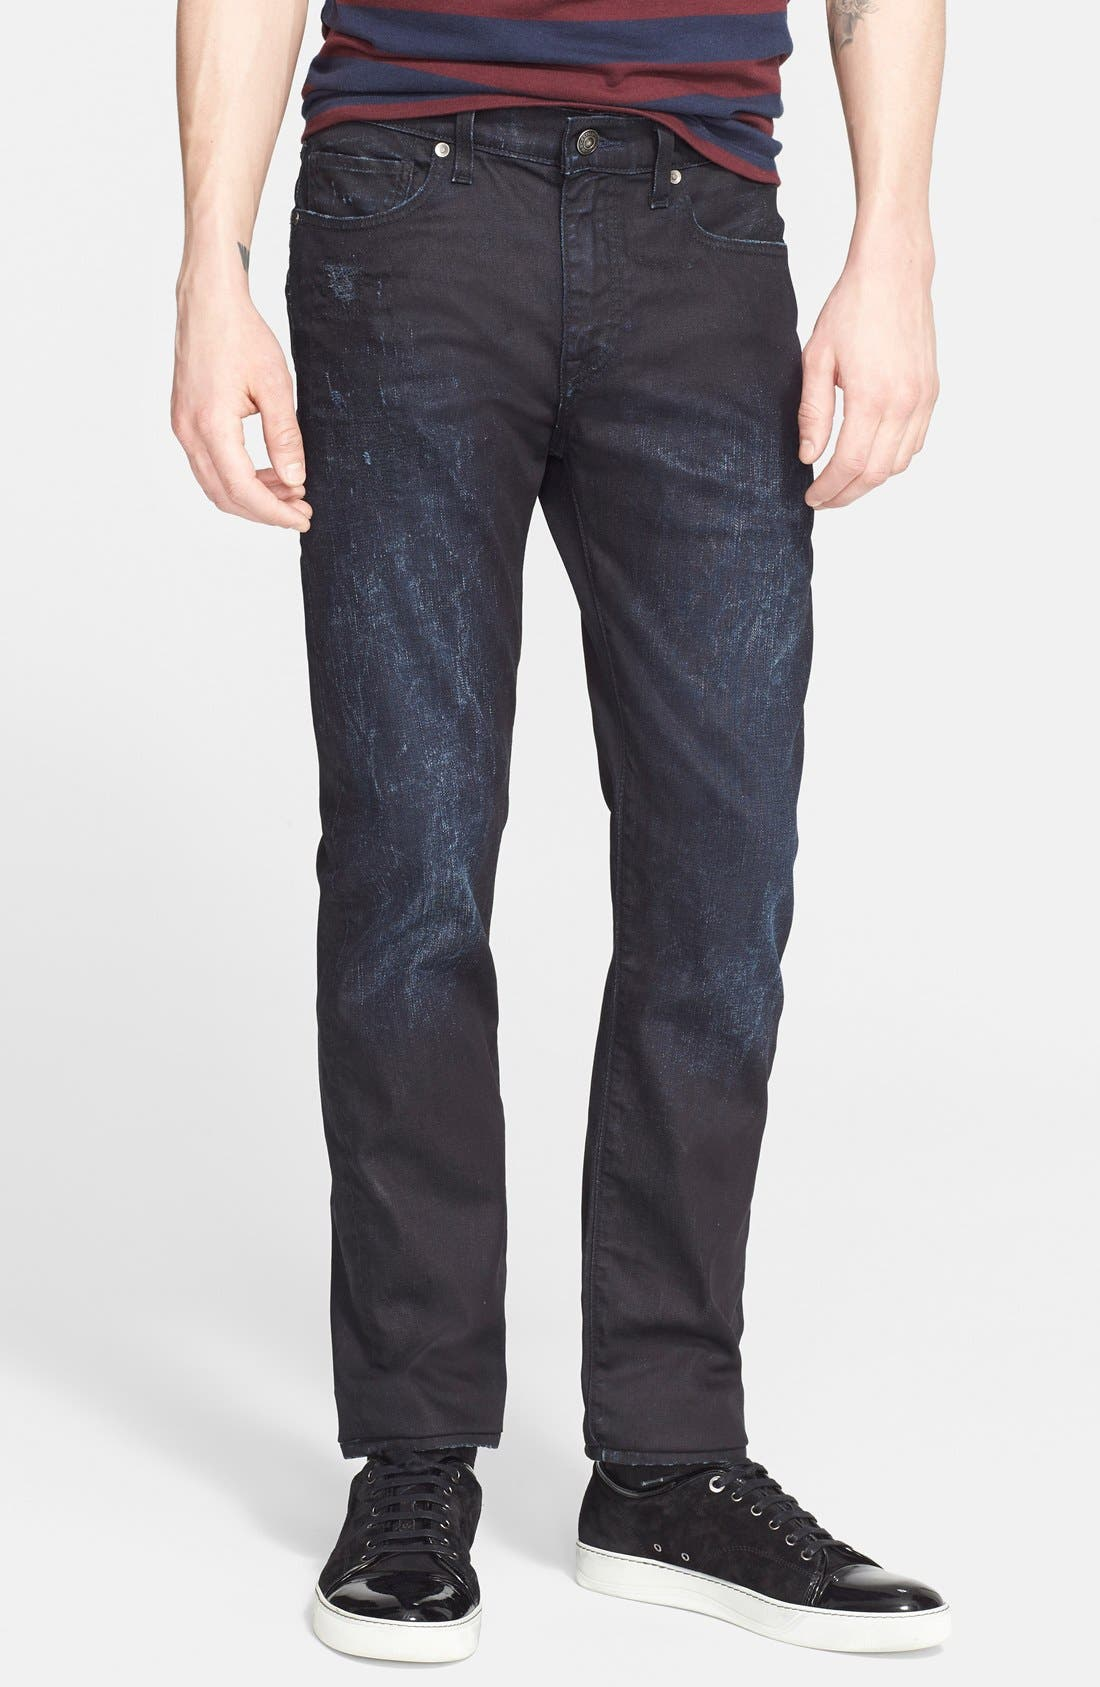 'Death or Glory' Waxed Skinny Fit Jeans,                             Main thumbnail 1, color,                             401